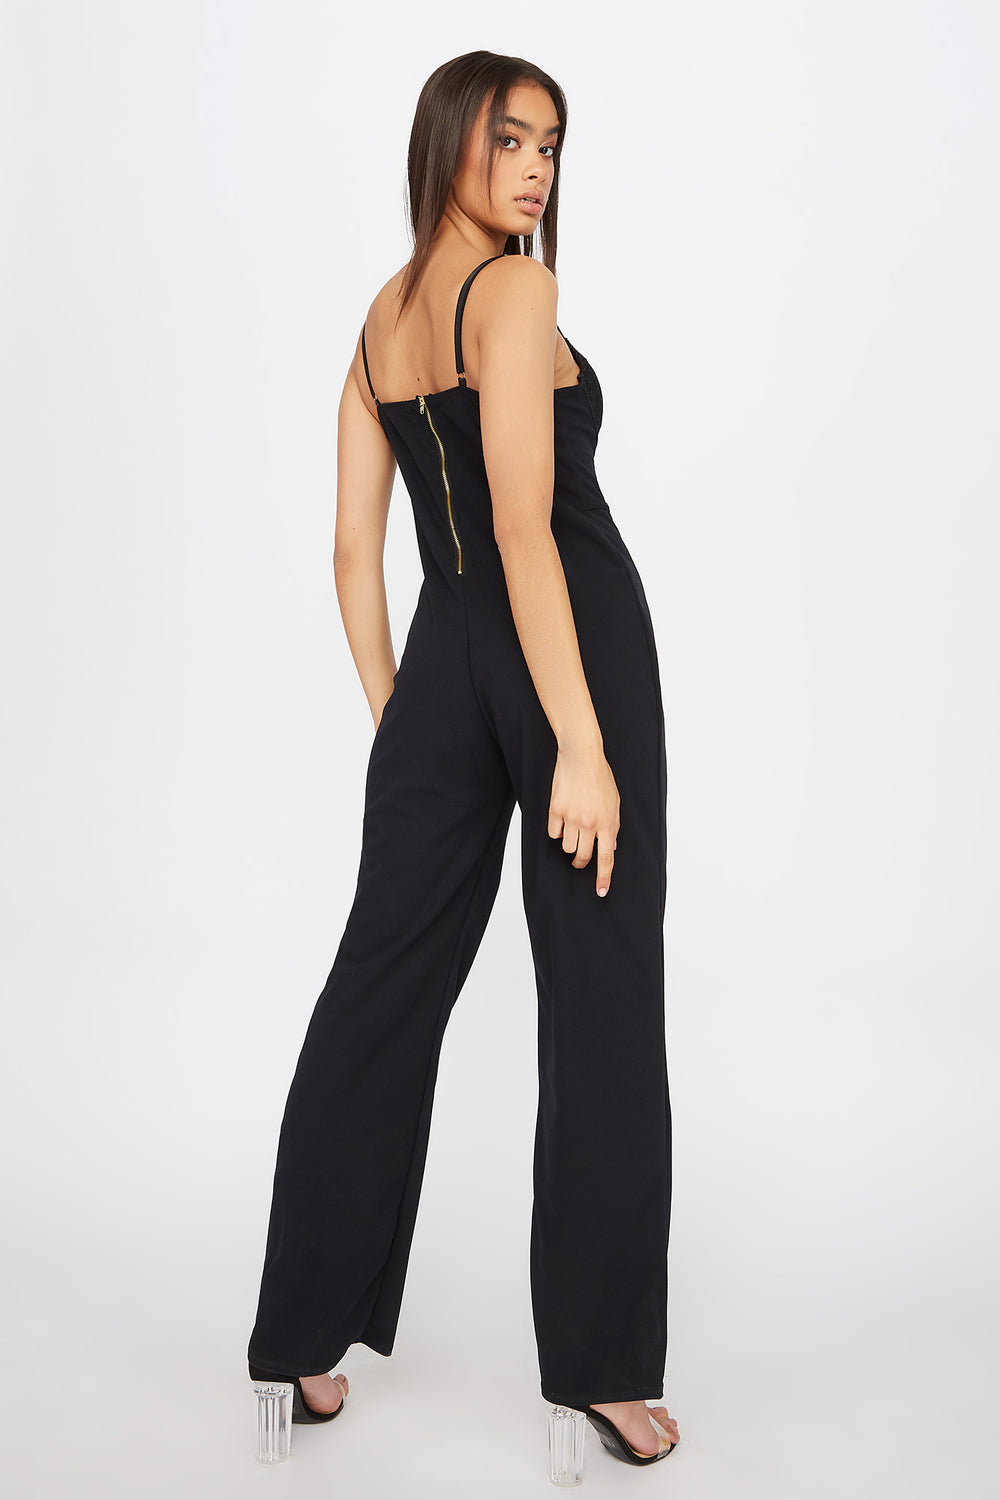 Bustier Lace Jumpsuit Black